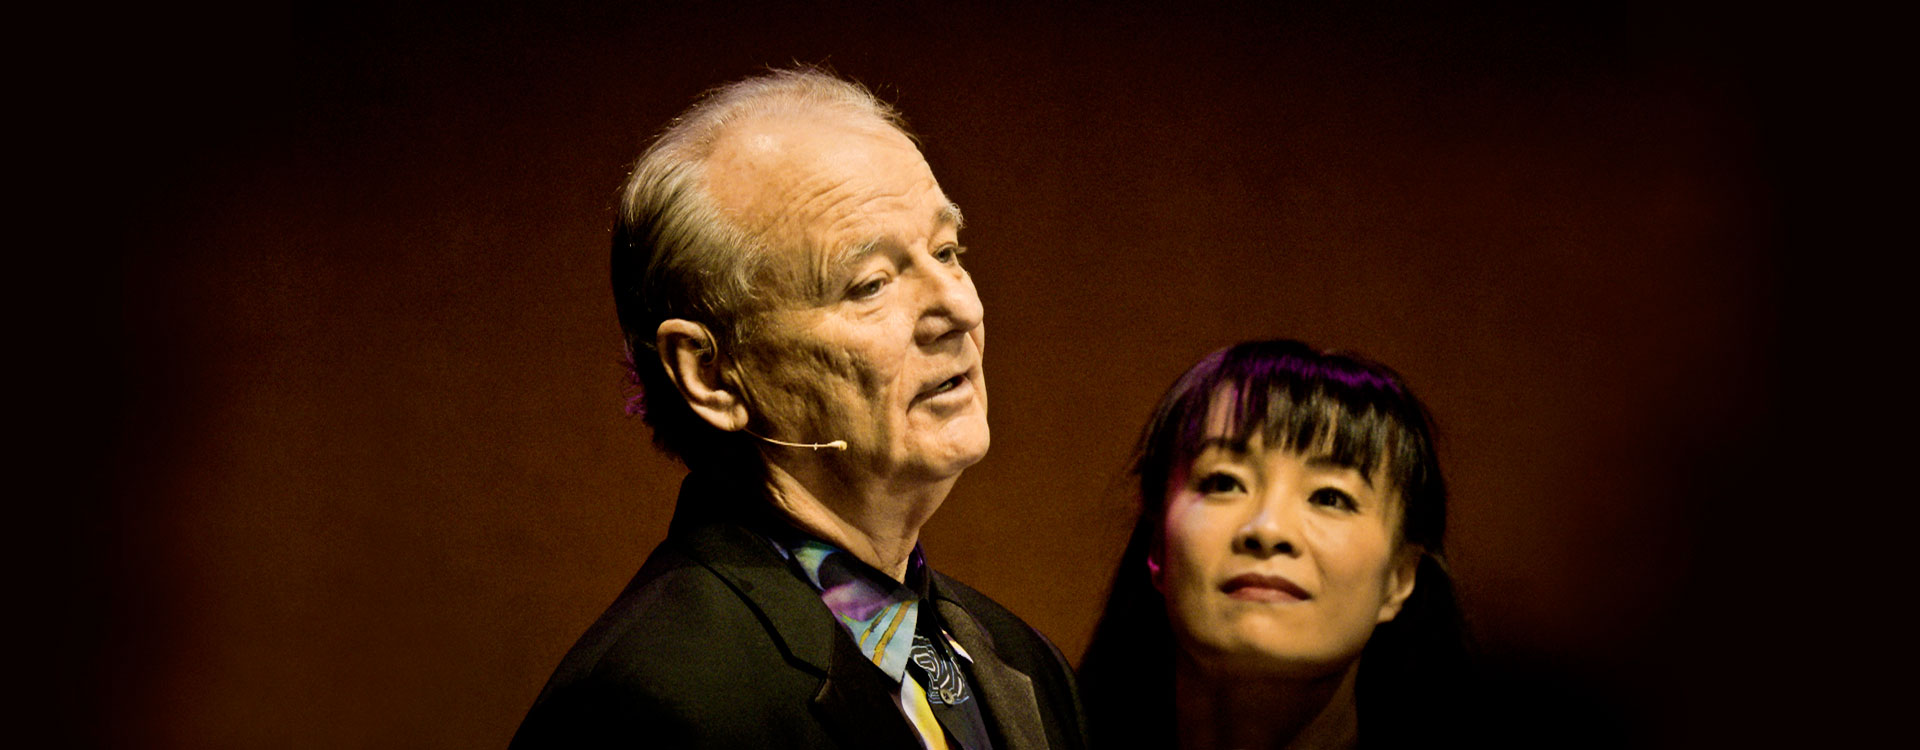 New Worlds - Bill Murray, Jan Vogler & Friends - at the Hanover Theatre, Worcester